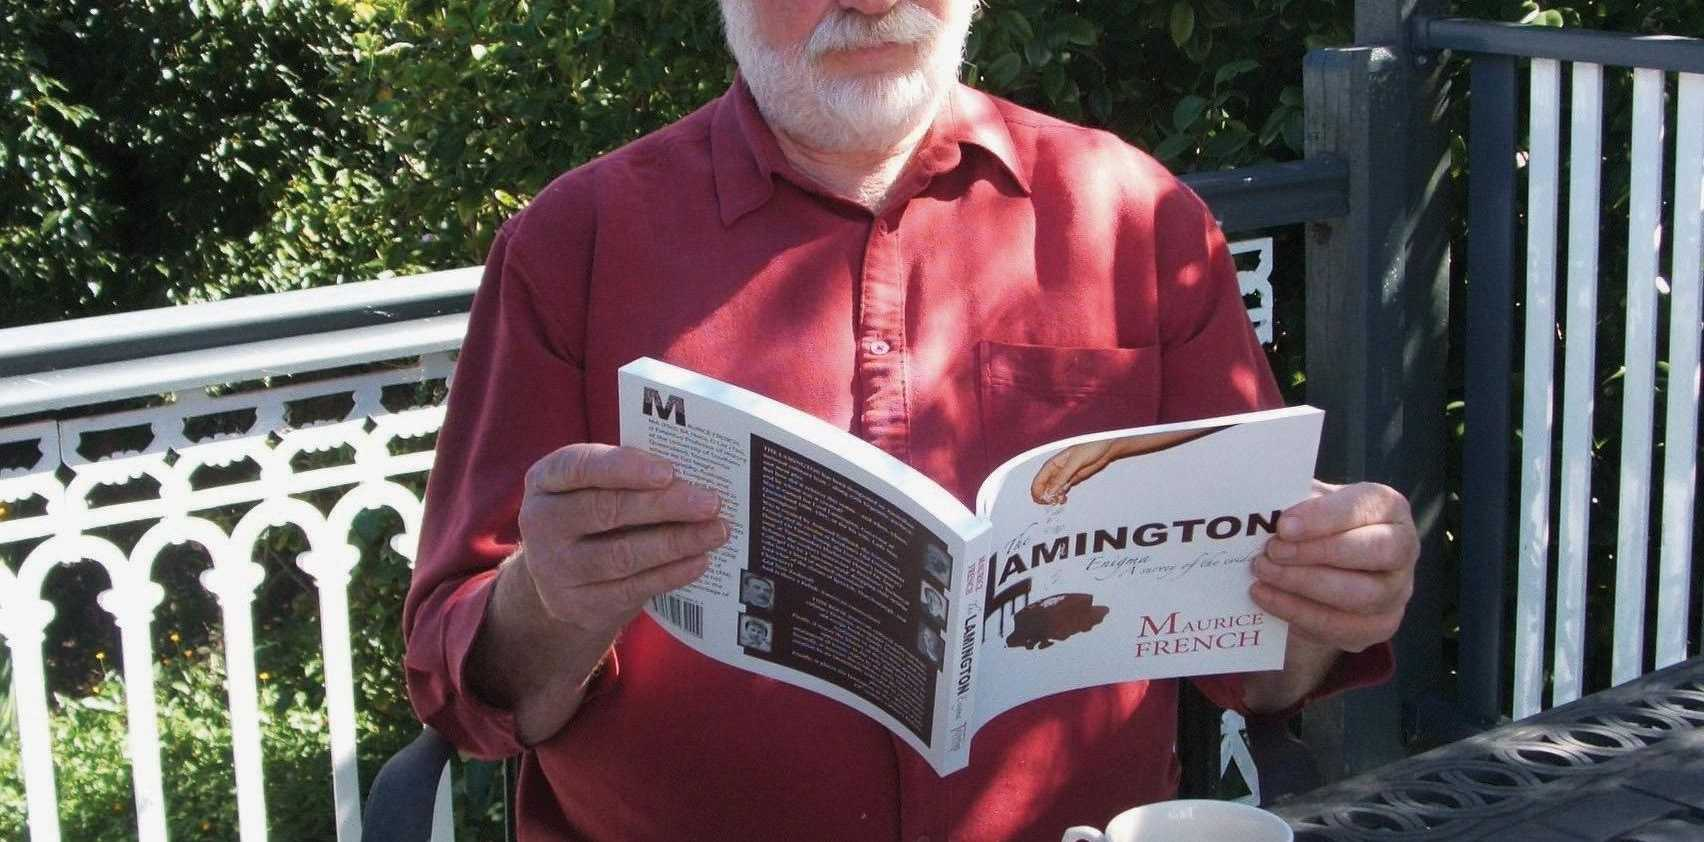 BITE OF HISTORY: Toowoomba Historical Society president Maurice French, with his recent book The Lamington Enigma, which examines whether the lamington was actually invented by a Toowoomba cook for her employer, Lord Lamington, in the late 1800s. Sadly, it was not.